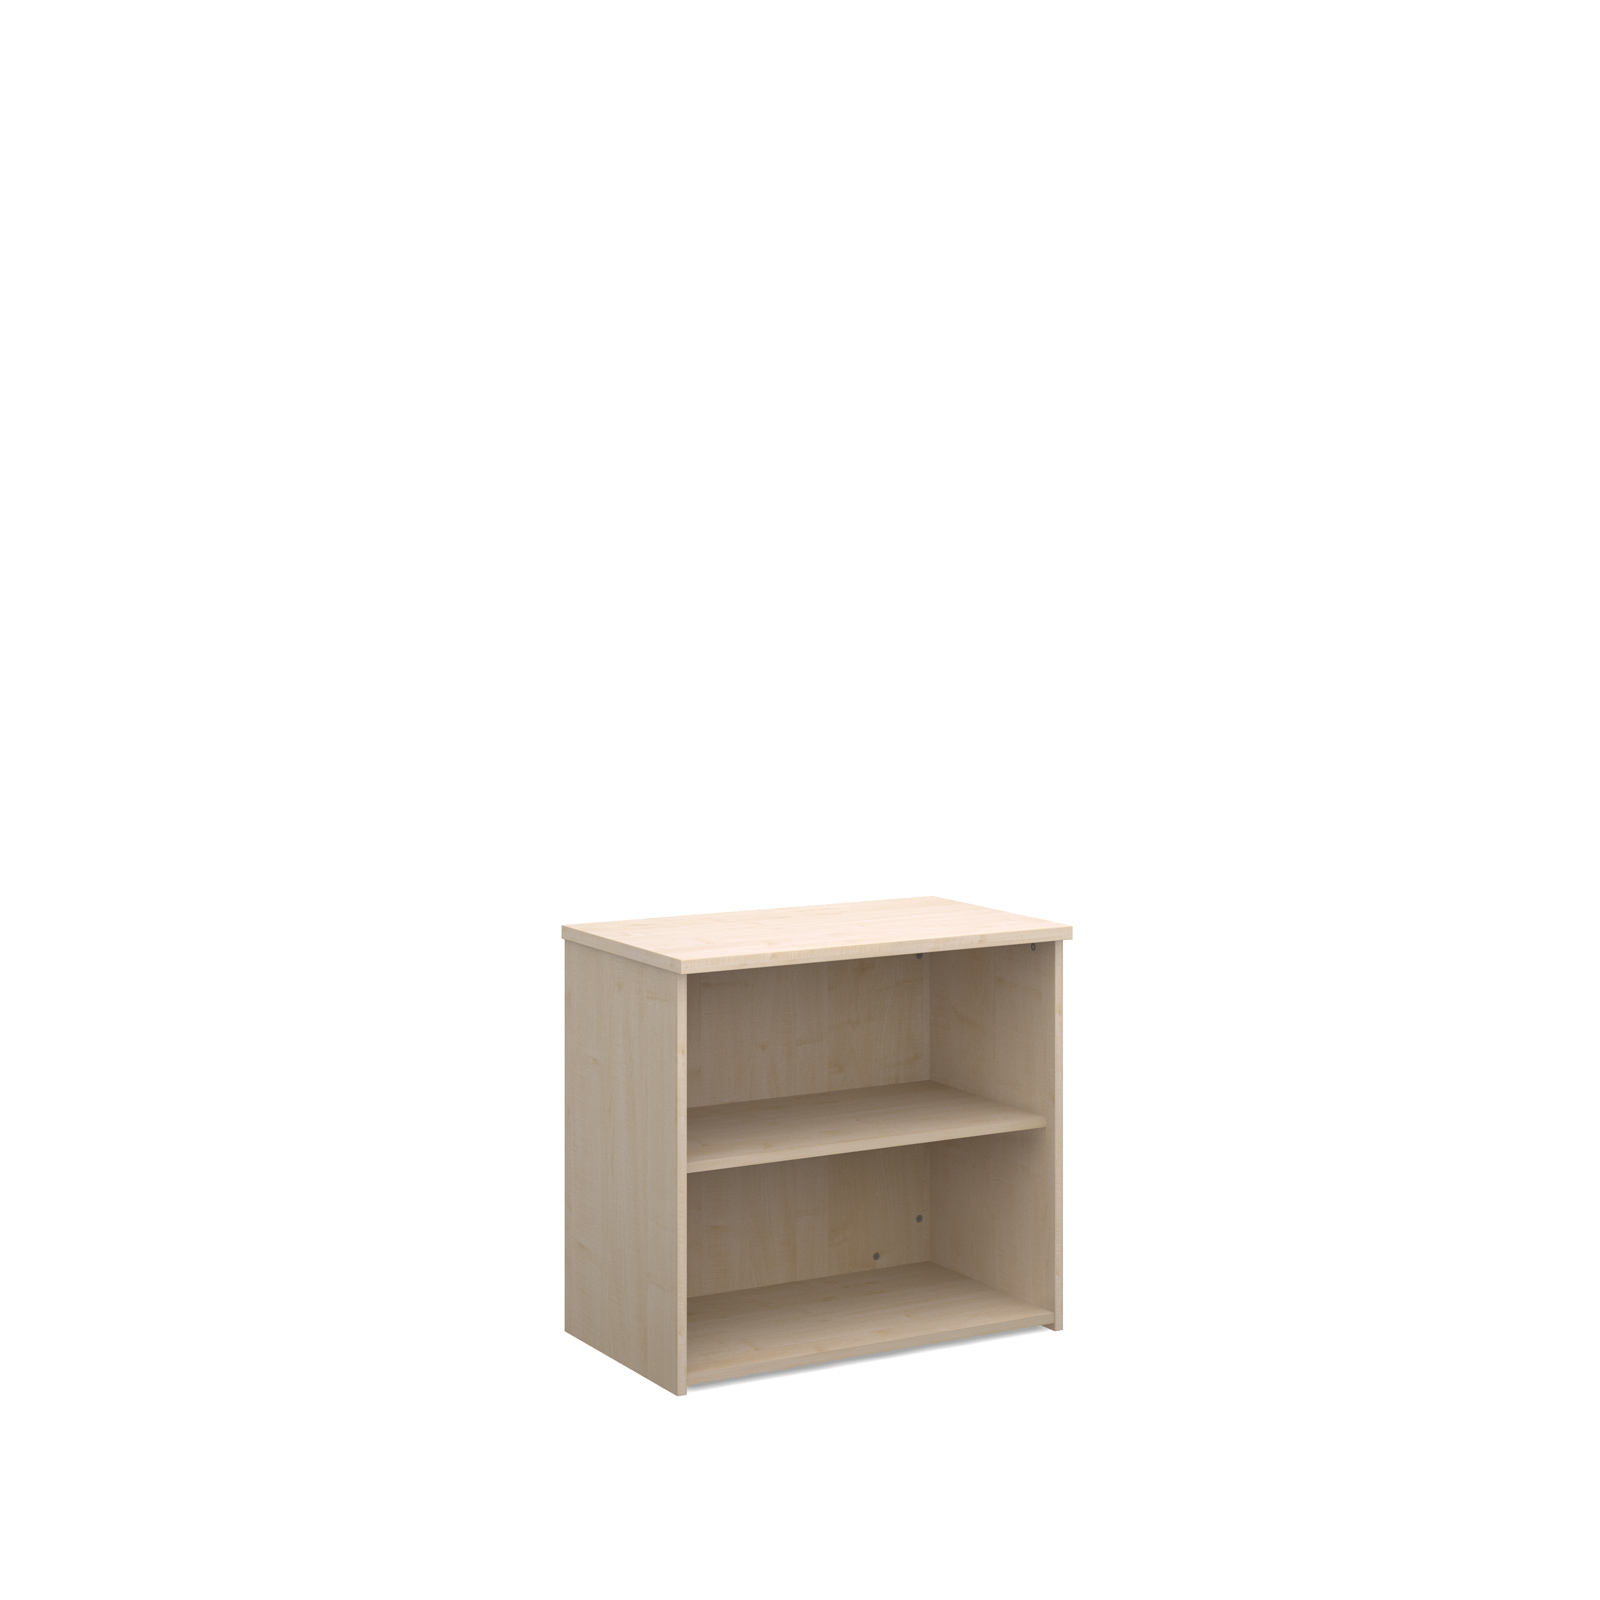 Up To 1200mm High Universal bookcase 740mm high with 1 shelf - maple